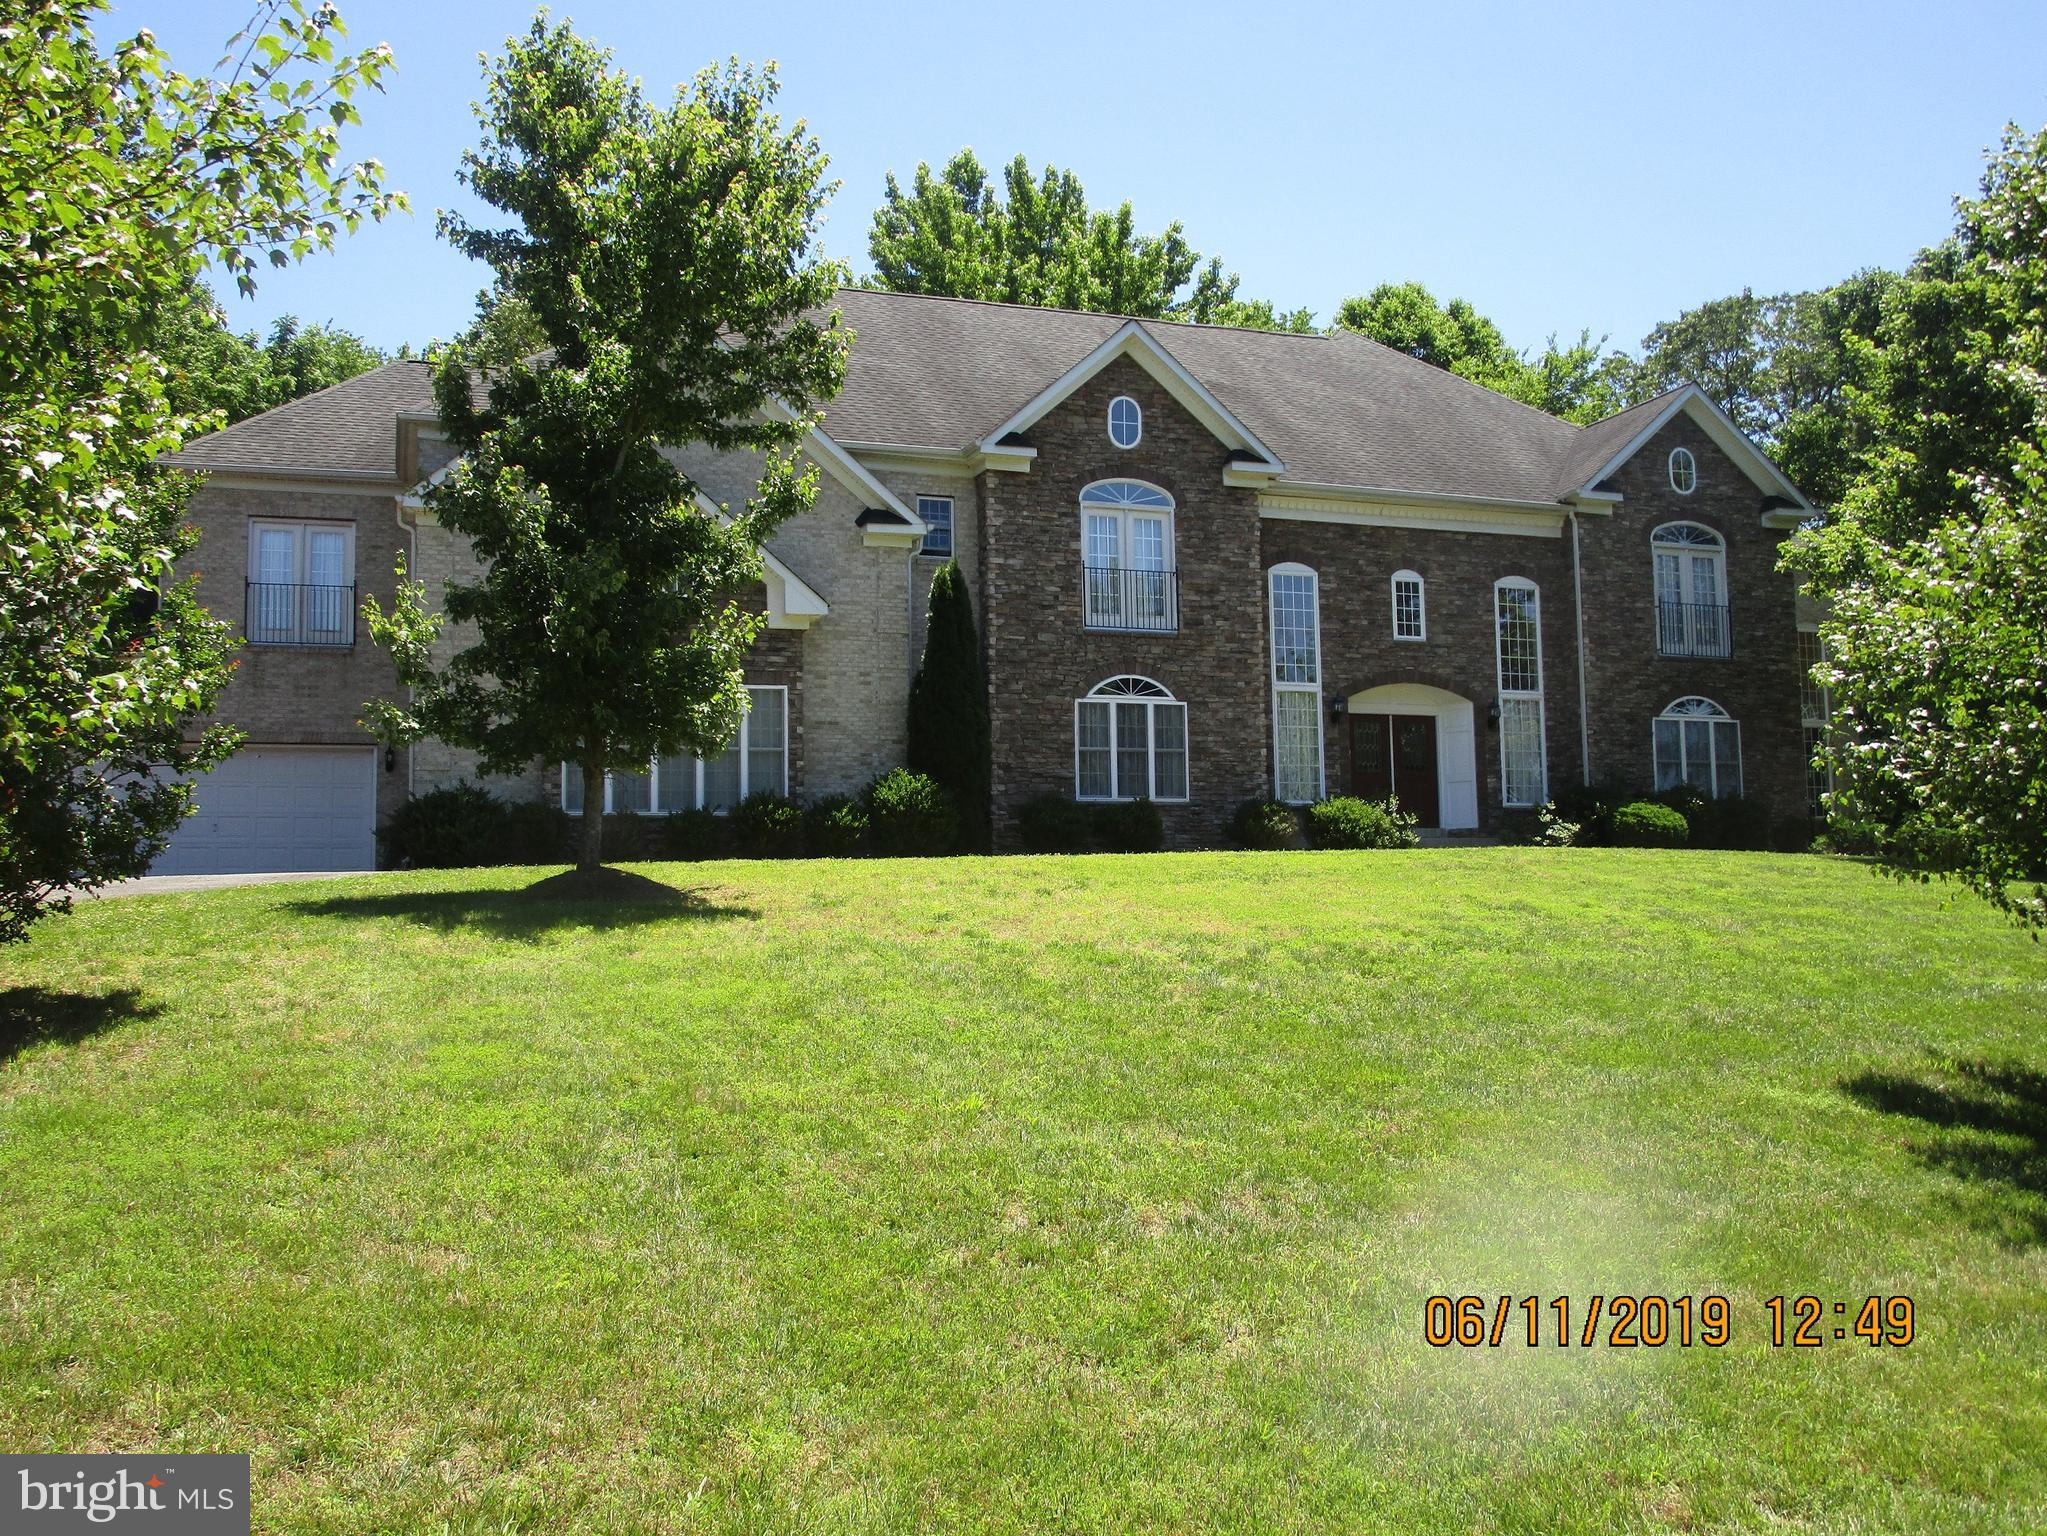 16609 PLEASANT COLONY Dr, Upper Marlboro, MD, 20774